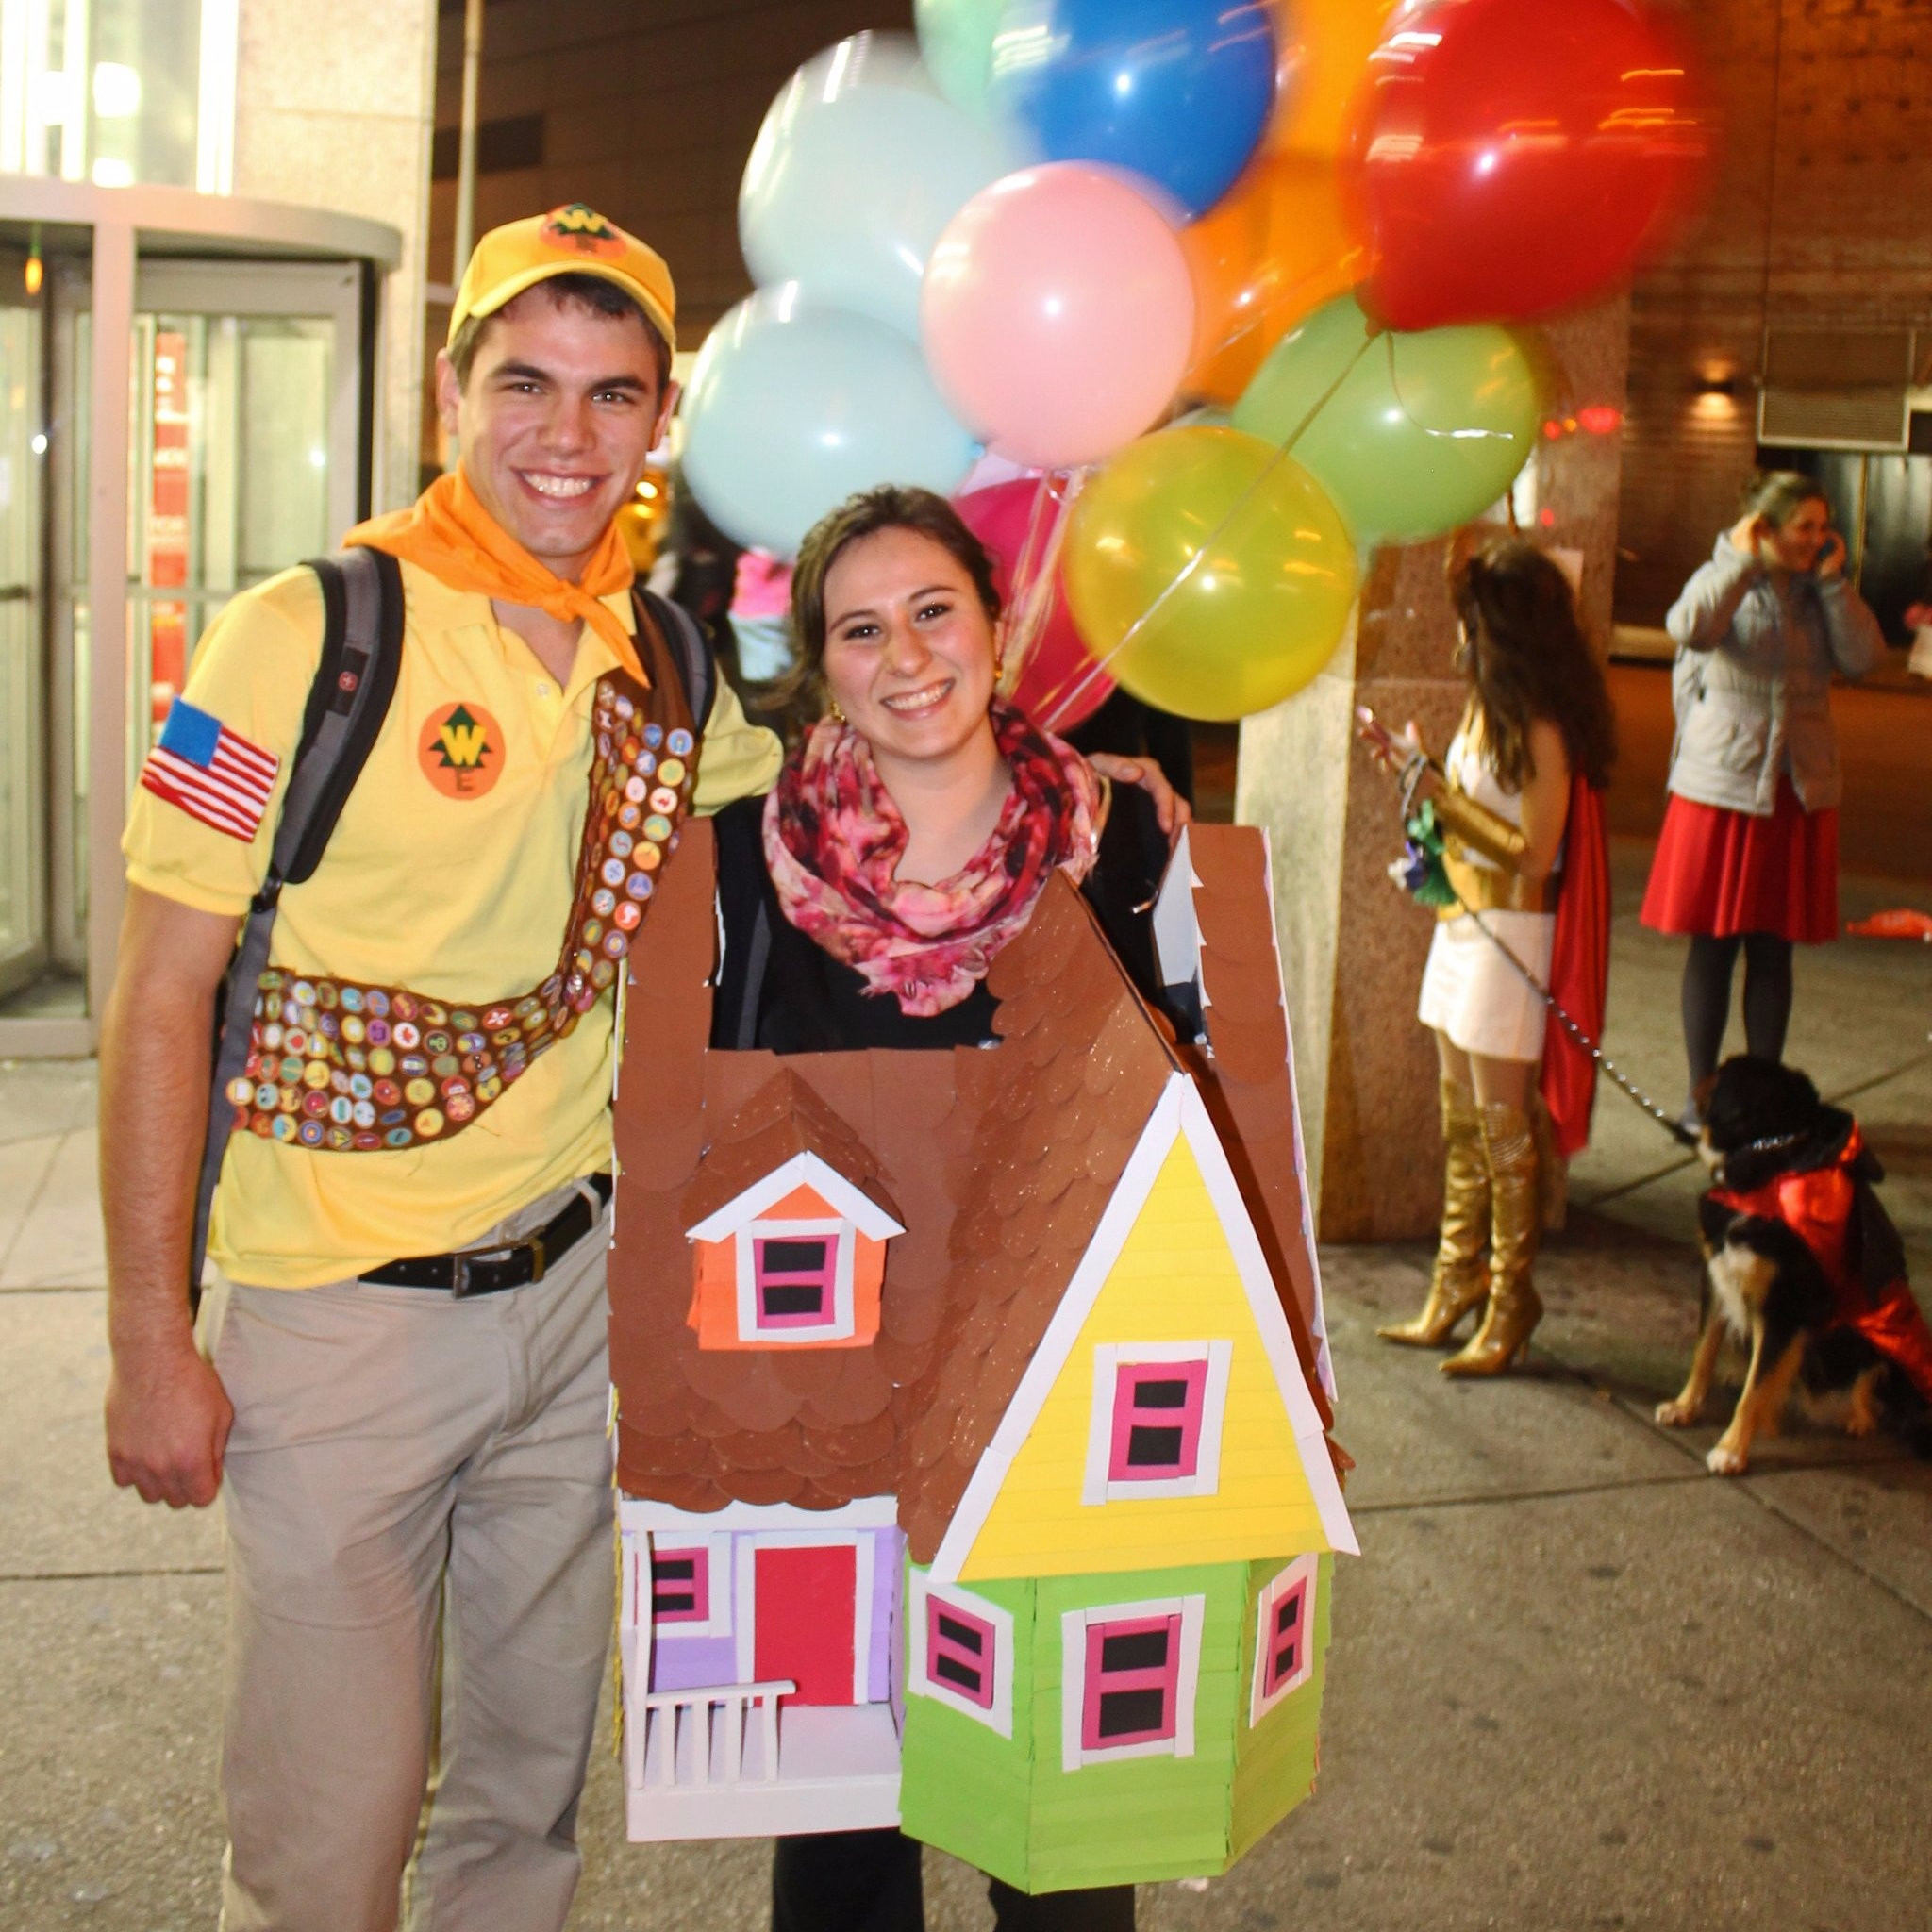 Clever DIY Halloween Costumes  10 Famous Creative Halloween Costume Ideas For Couples 2019